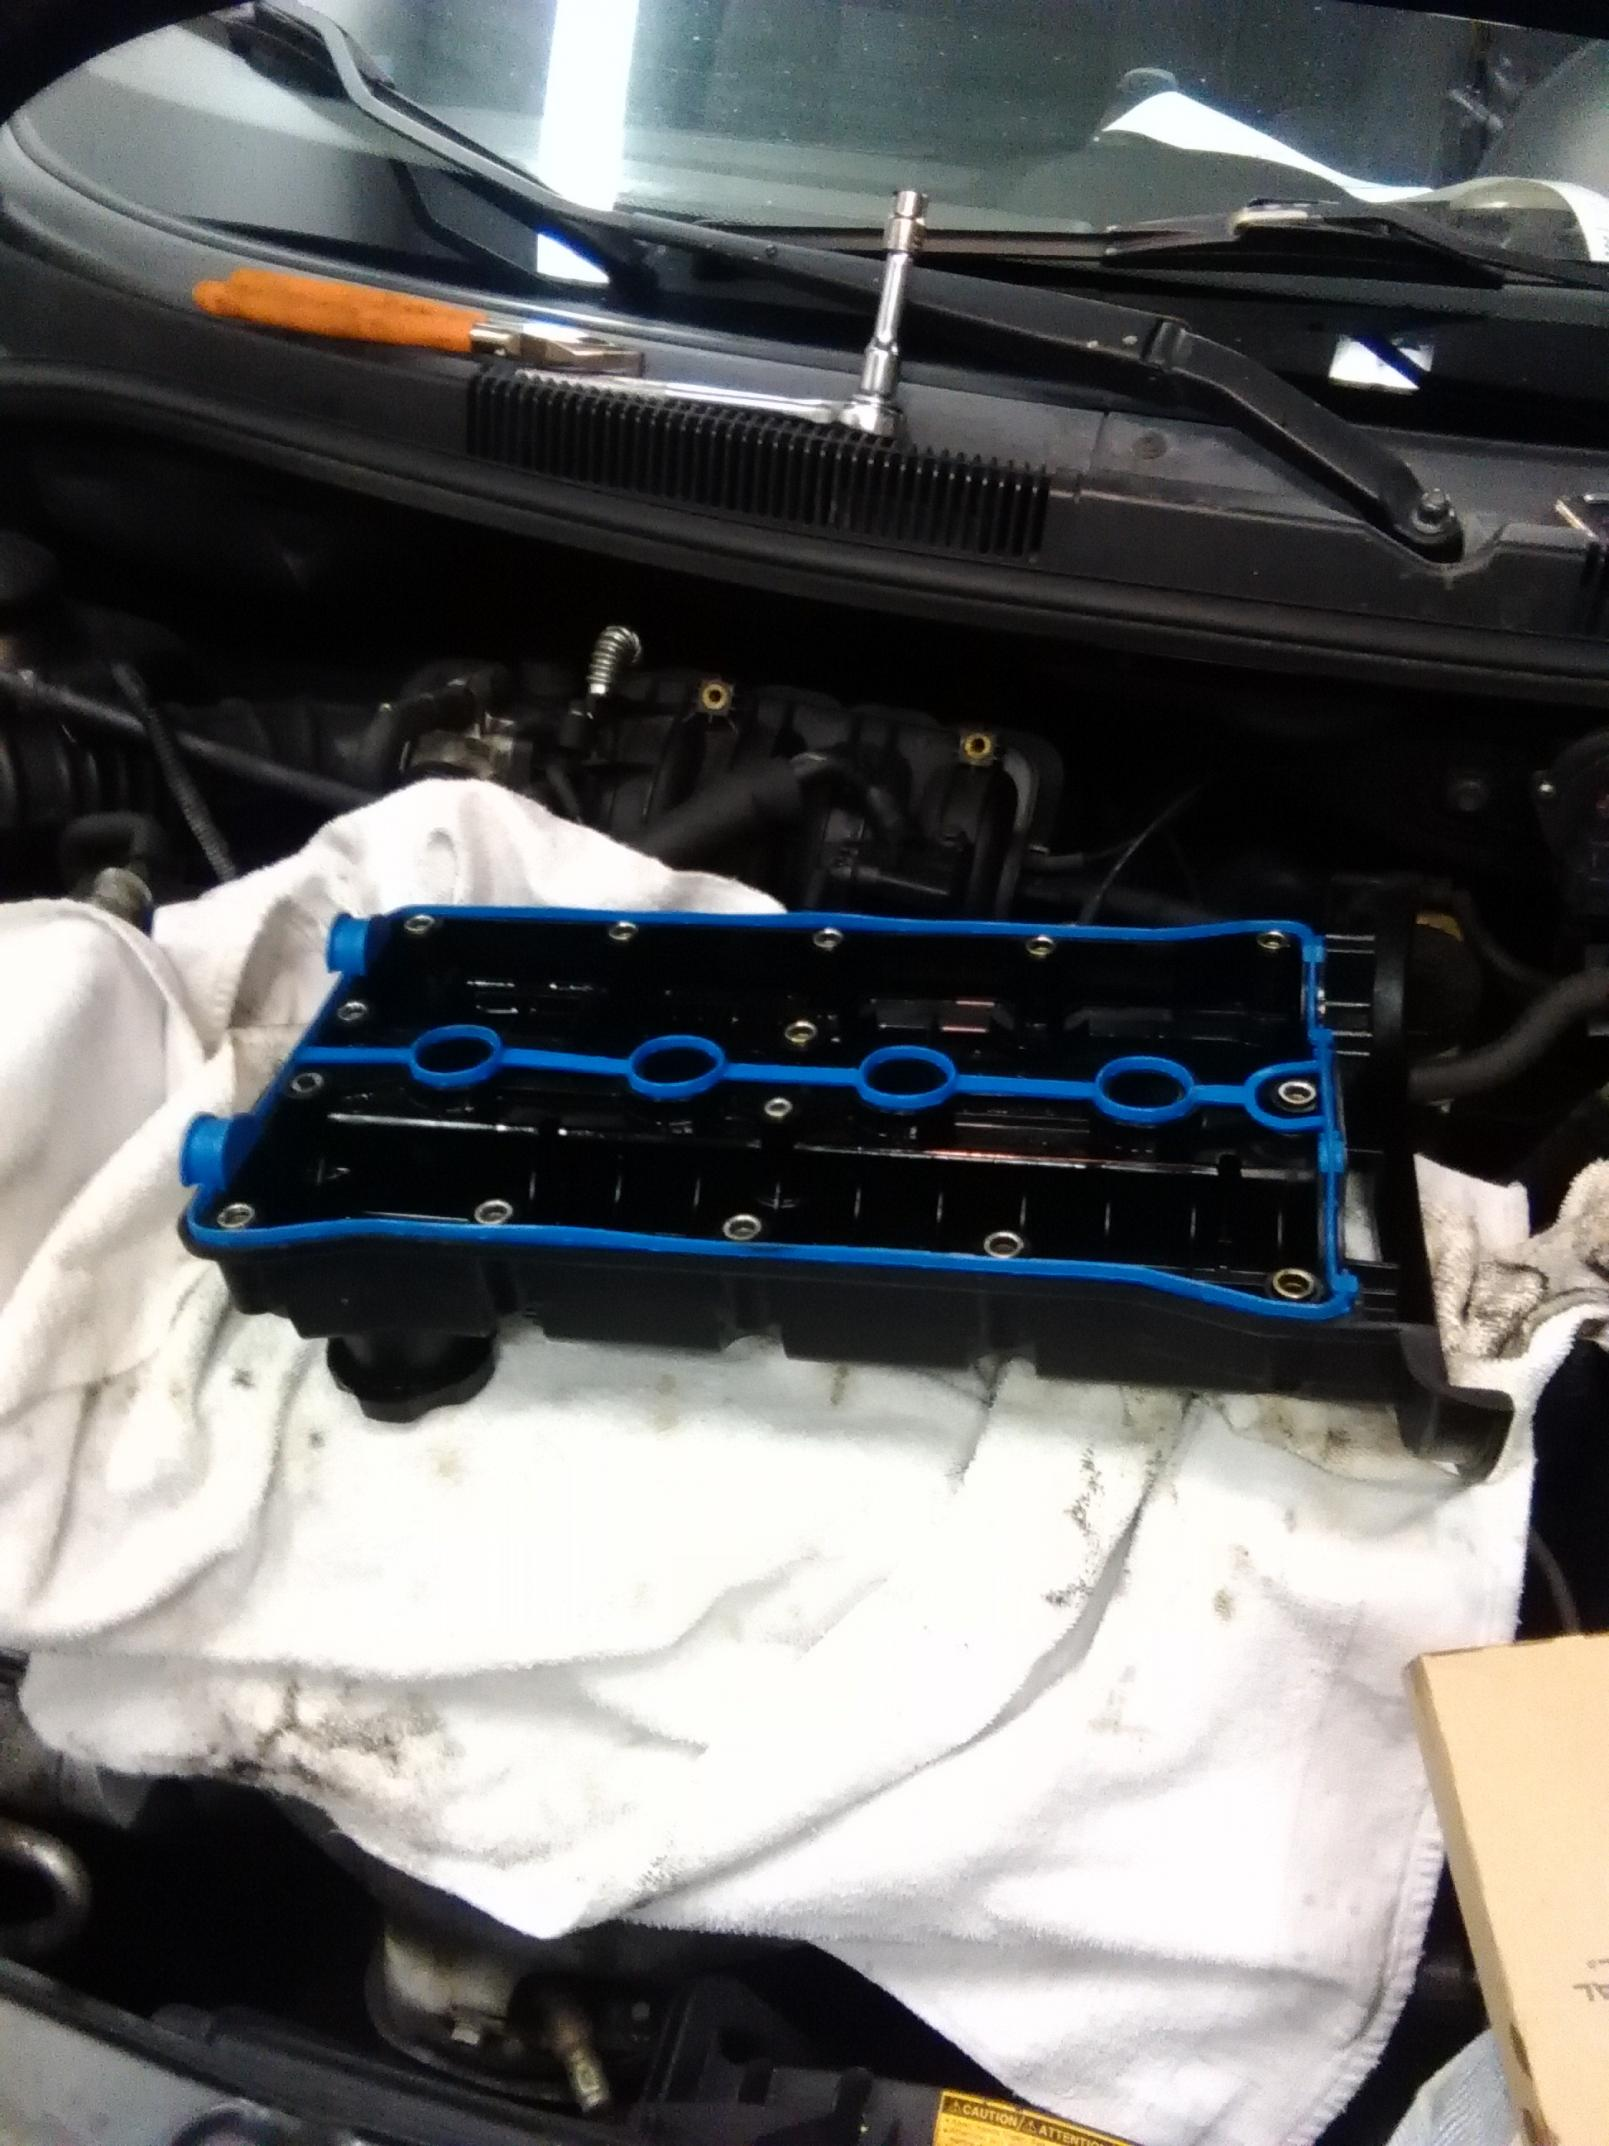 Replaced valve cover gasket 2007 Aveo5